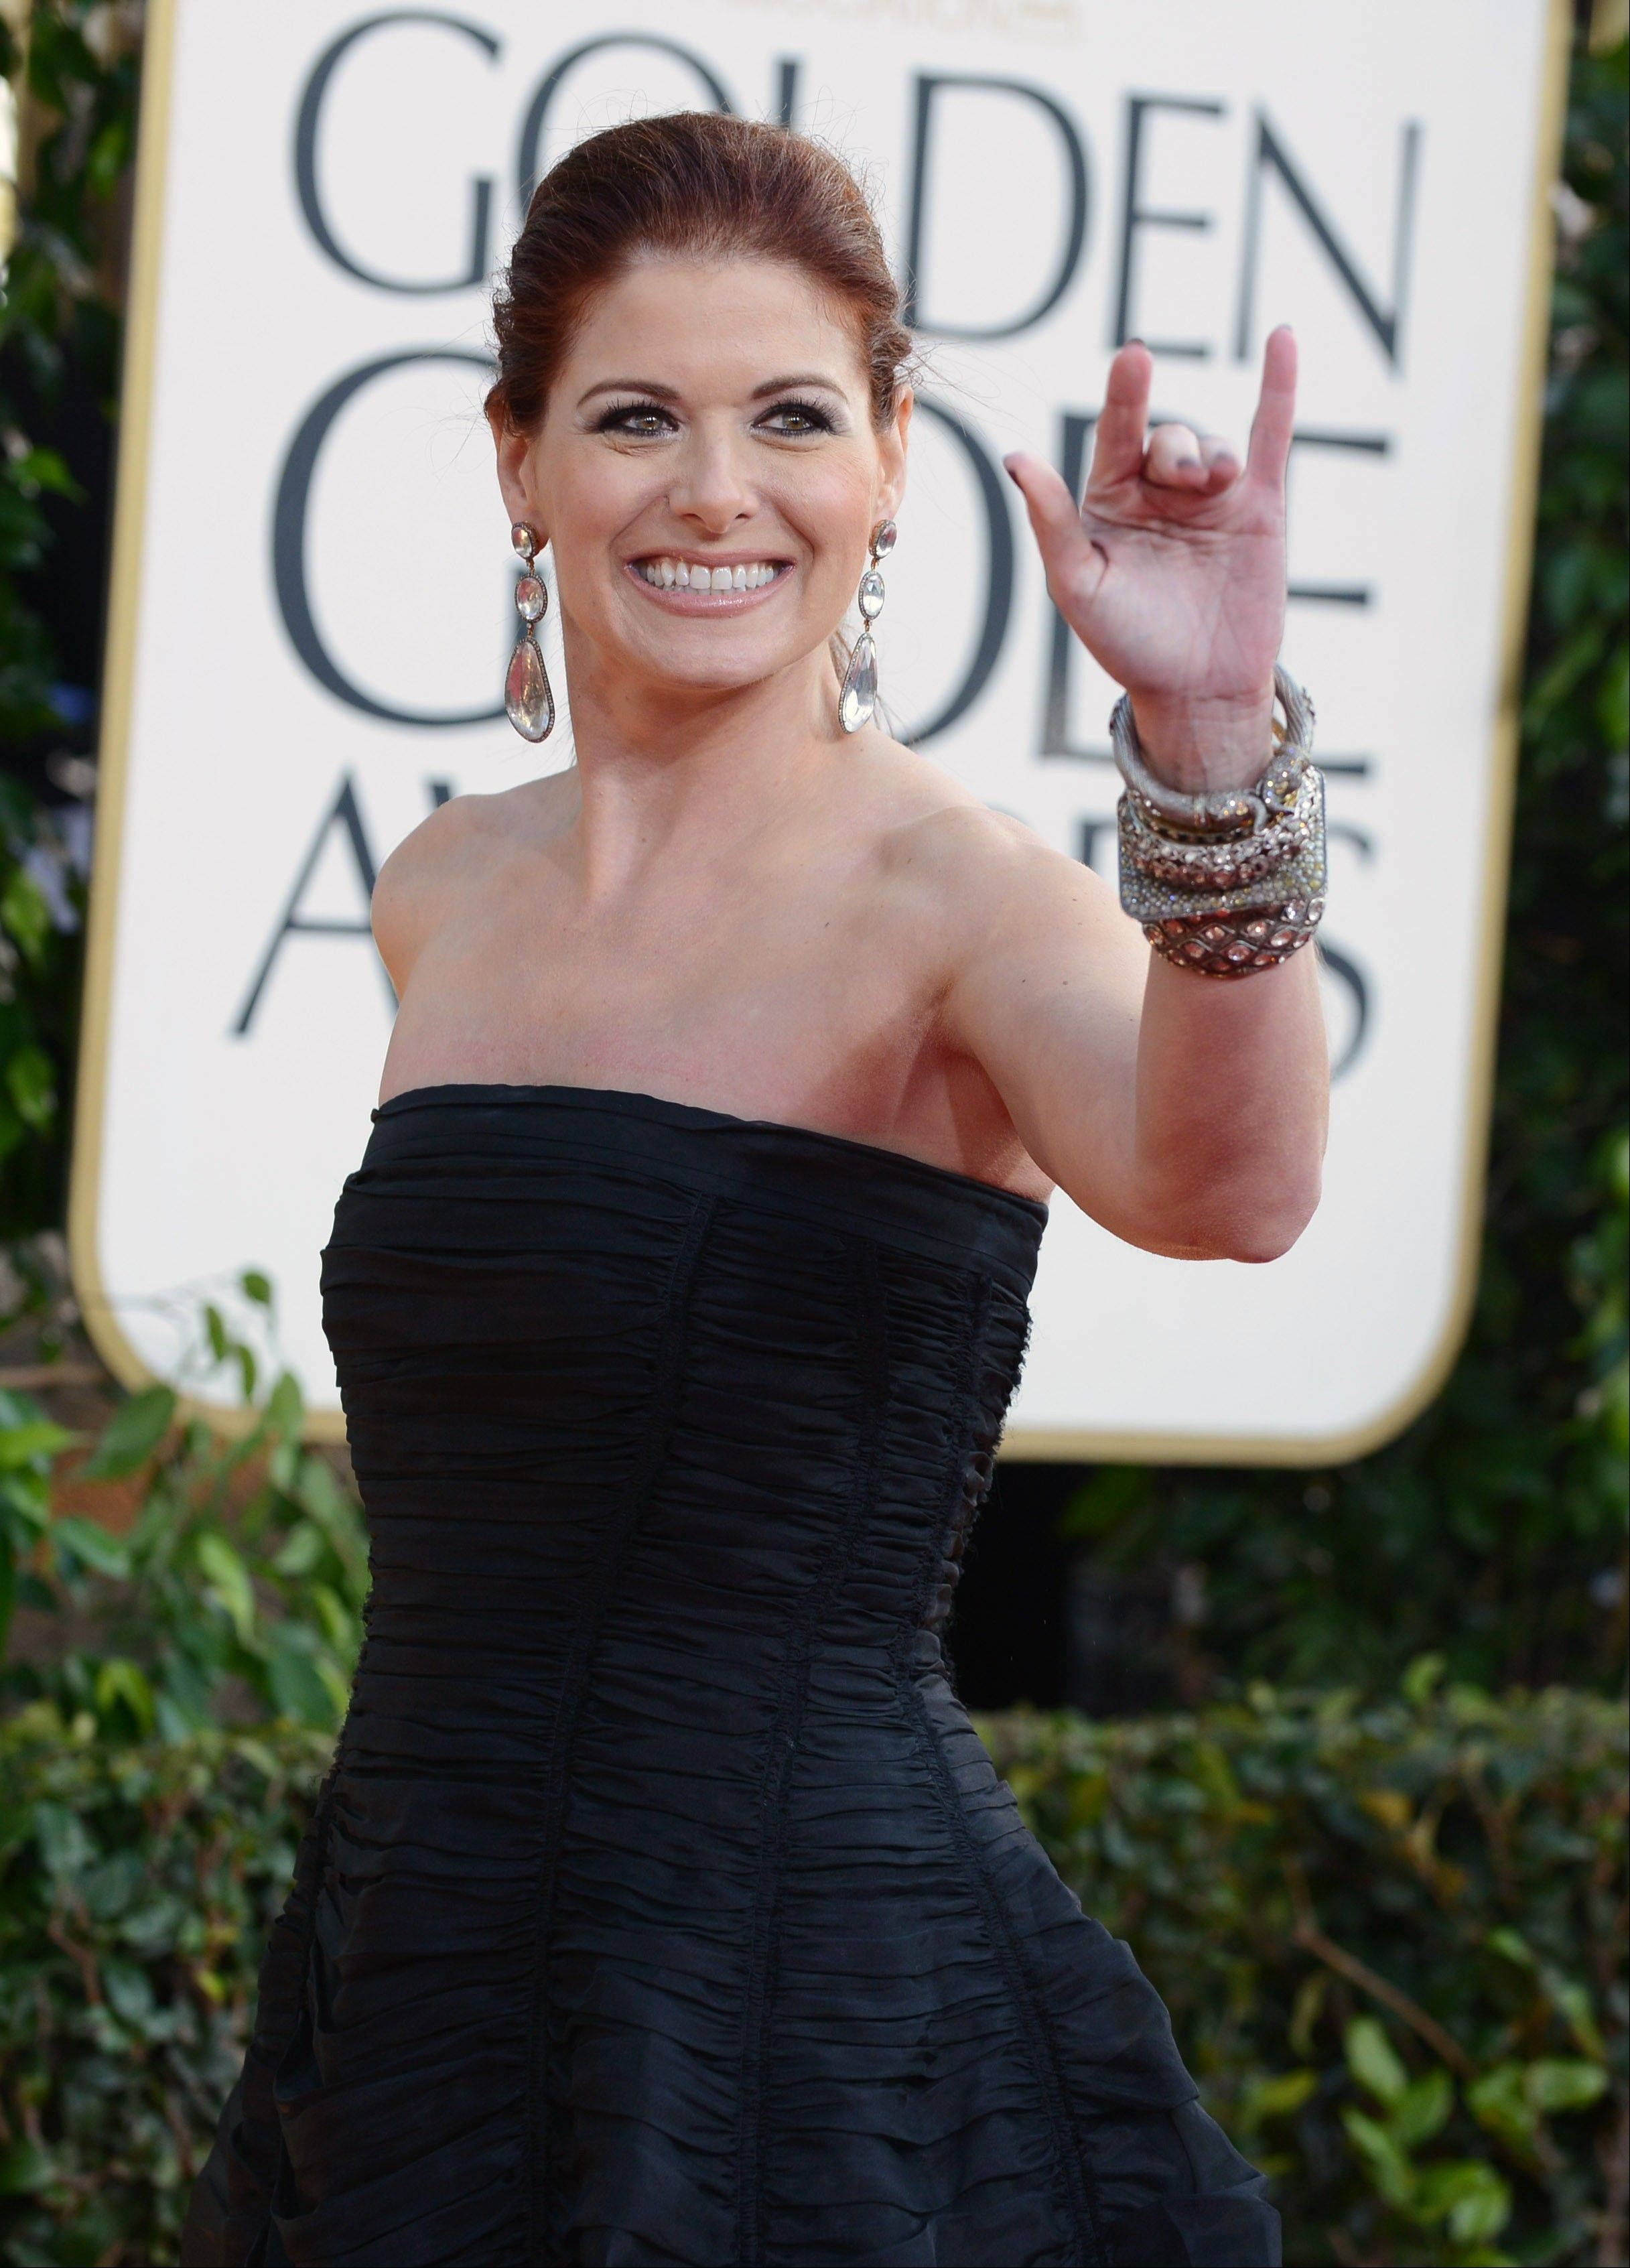 """Smash"" actress Debra Messing arrives at the 70th Annual Golden Globe Awards at the Beverly Hilton Hotel on Sunday Jan. 13, 2013, in Beverly Hills, Calif."